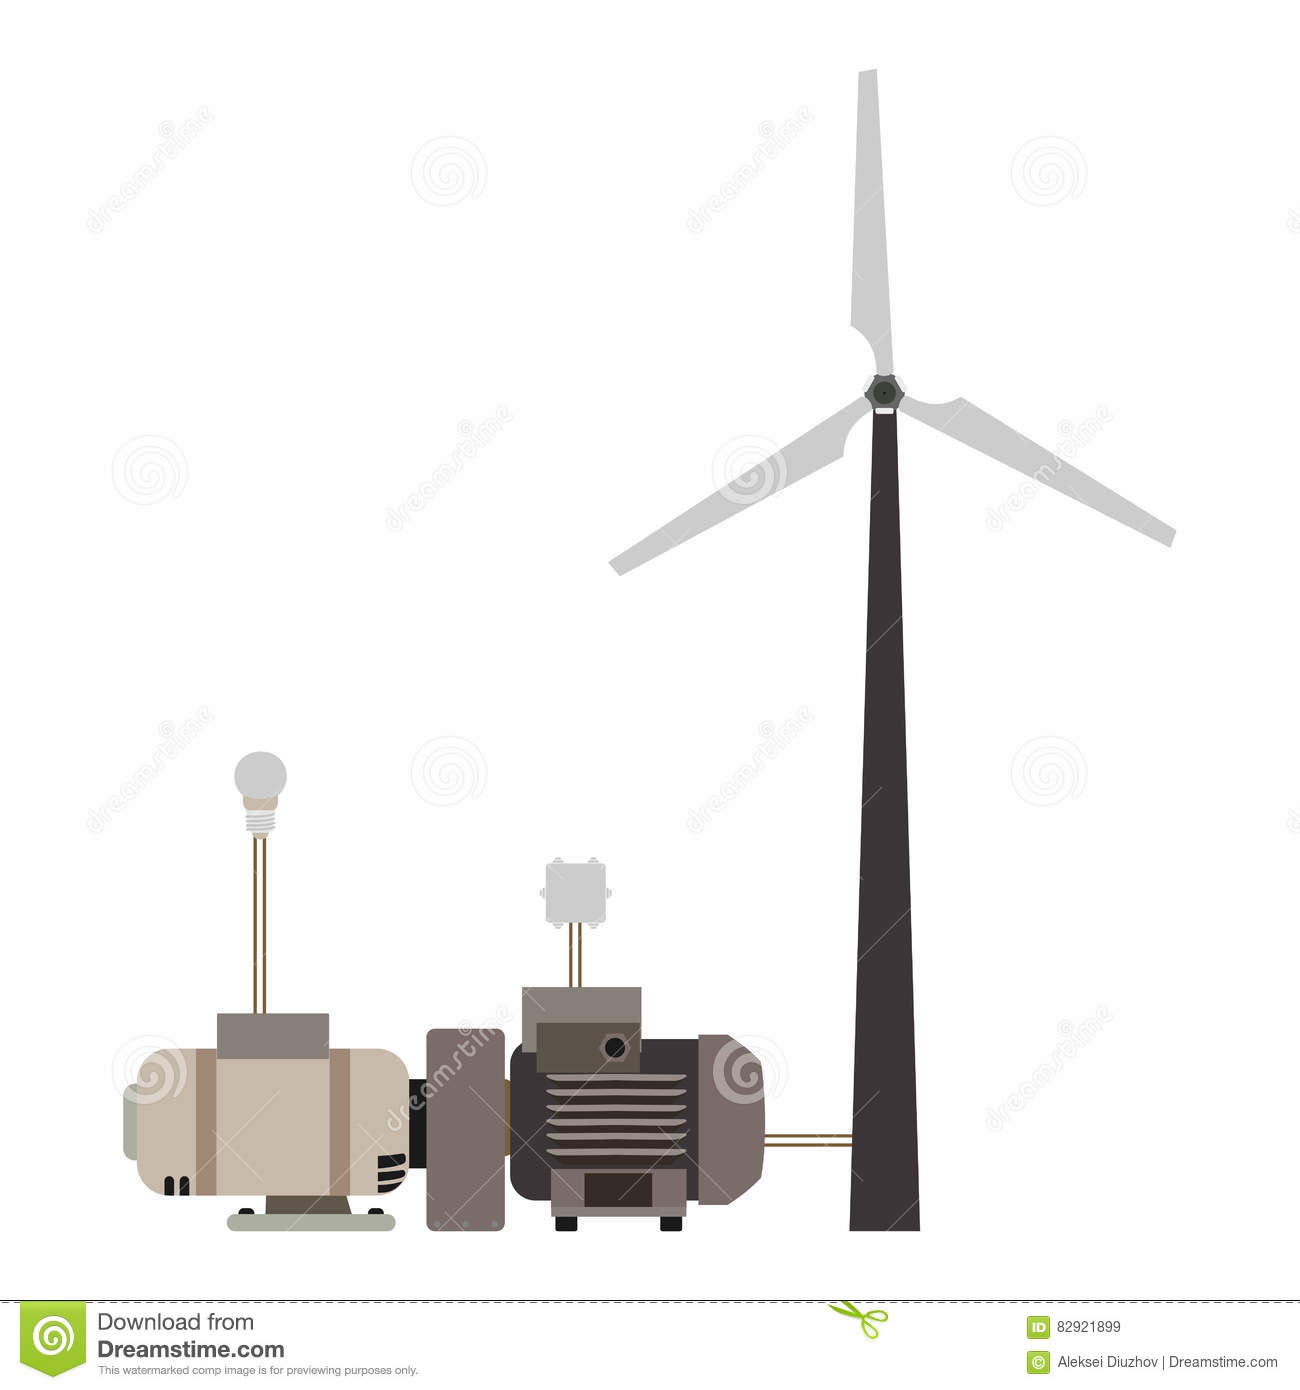 Wind Turbine Working Principle Diagram Stock Illustration Wiring